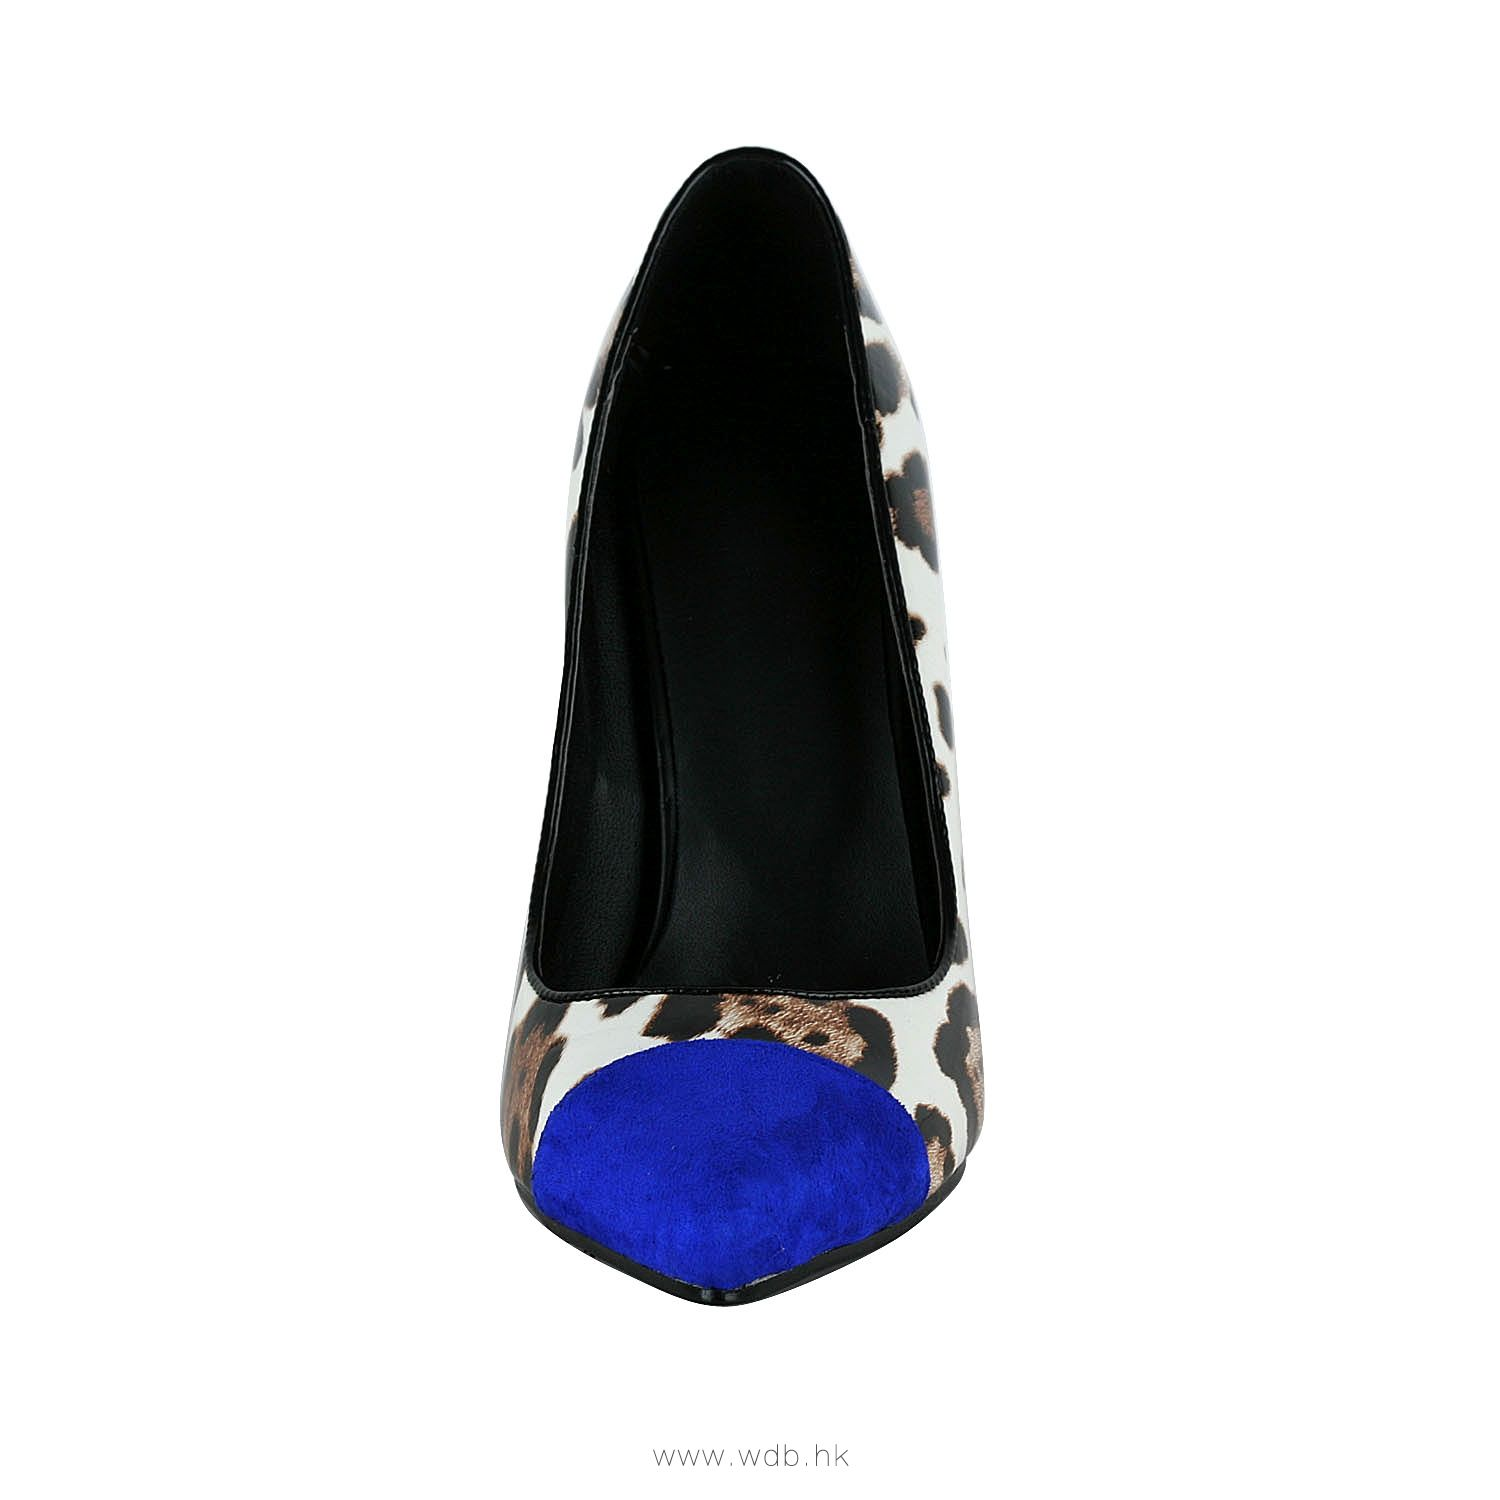 4 inch blue toe Leopard Leather shoes $41.98